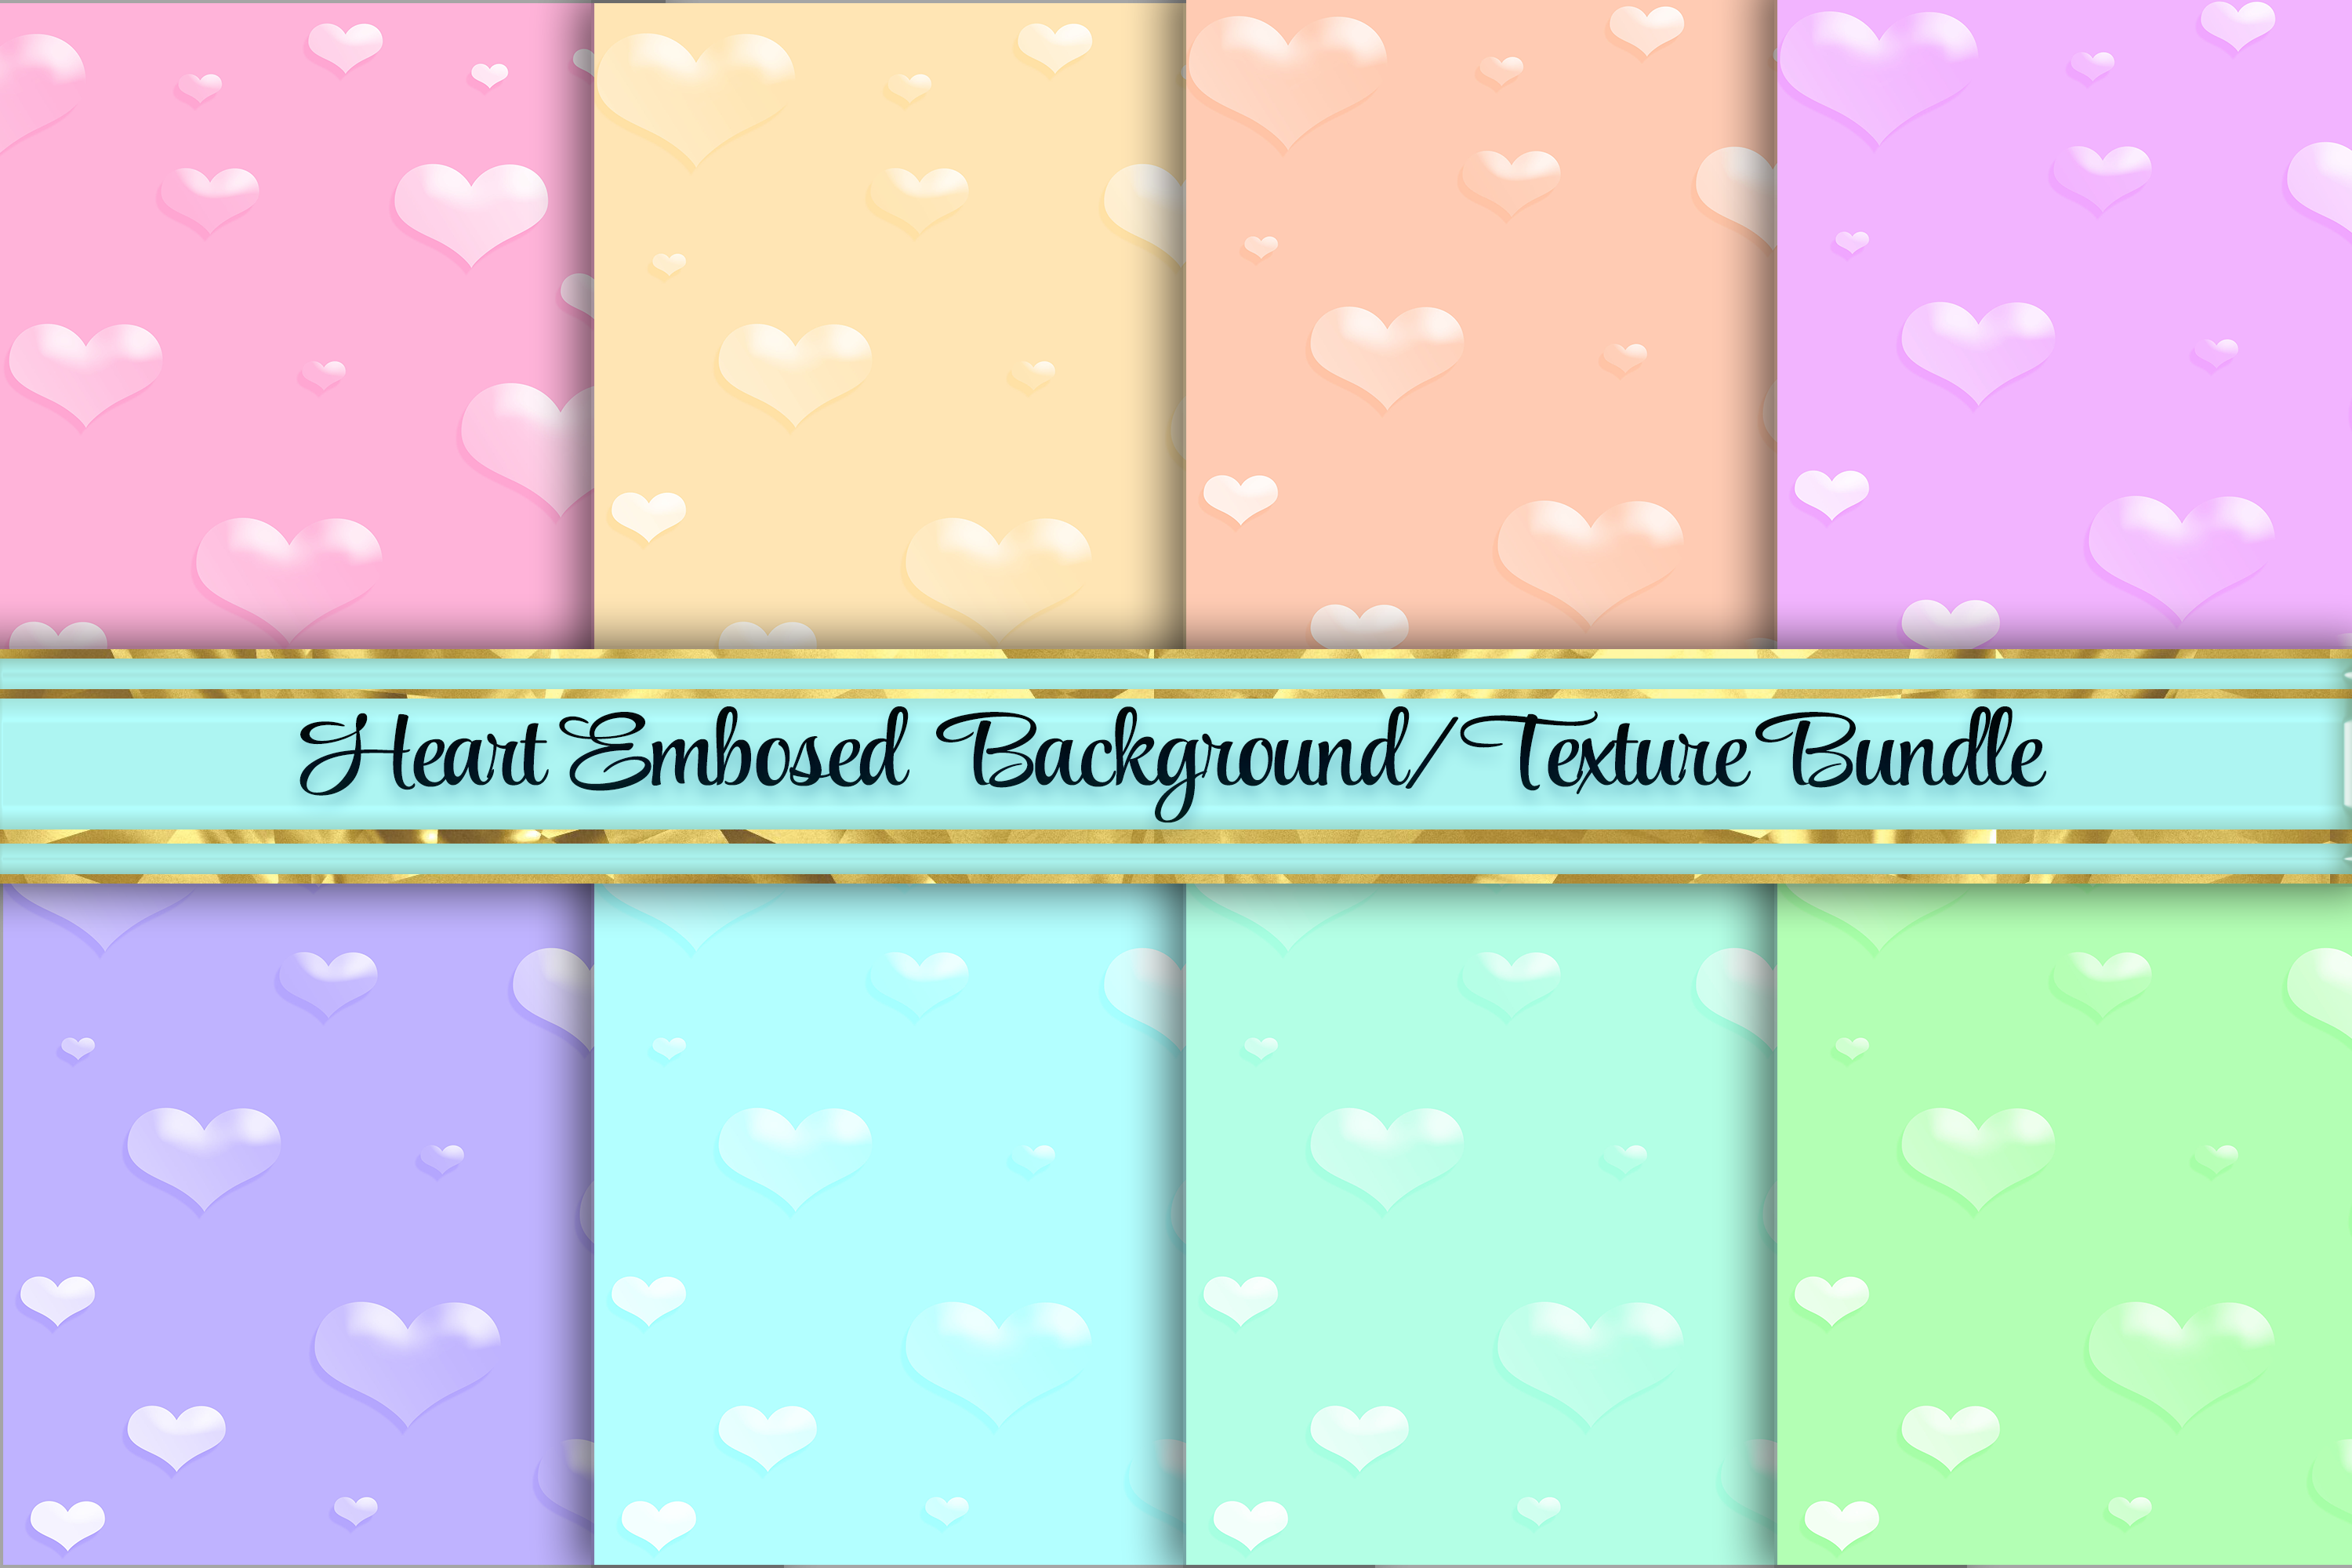 Embossed Heart Pastel Texture Background Graphic By Am Digital